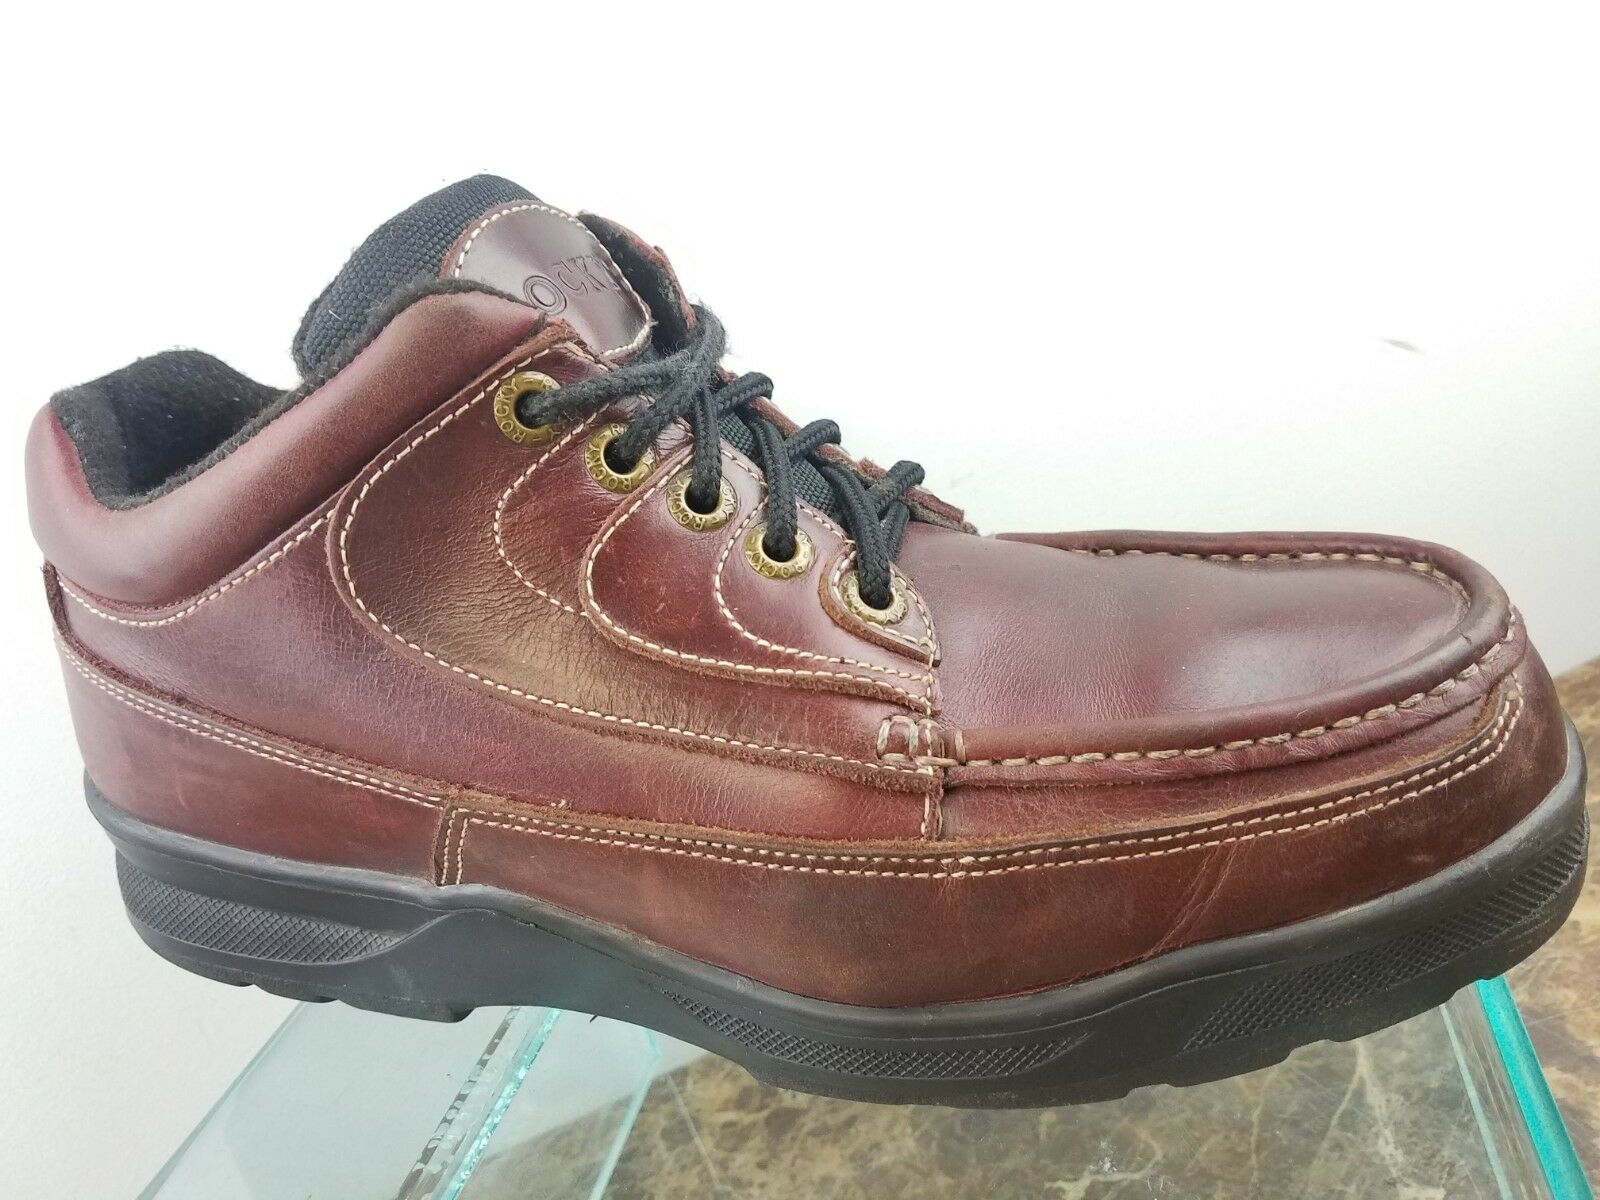 Rocky Mens Burgundy Leather Lace Up Hiking Hunting Trail Ankle Boots 10.5M USA